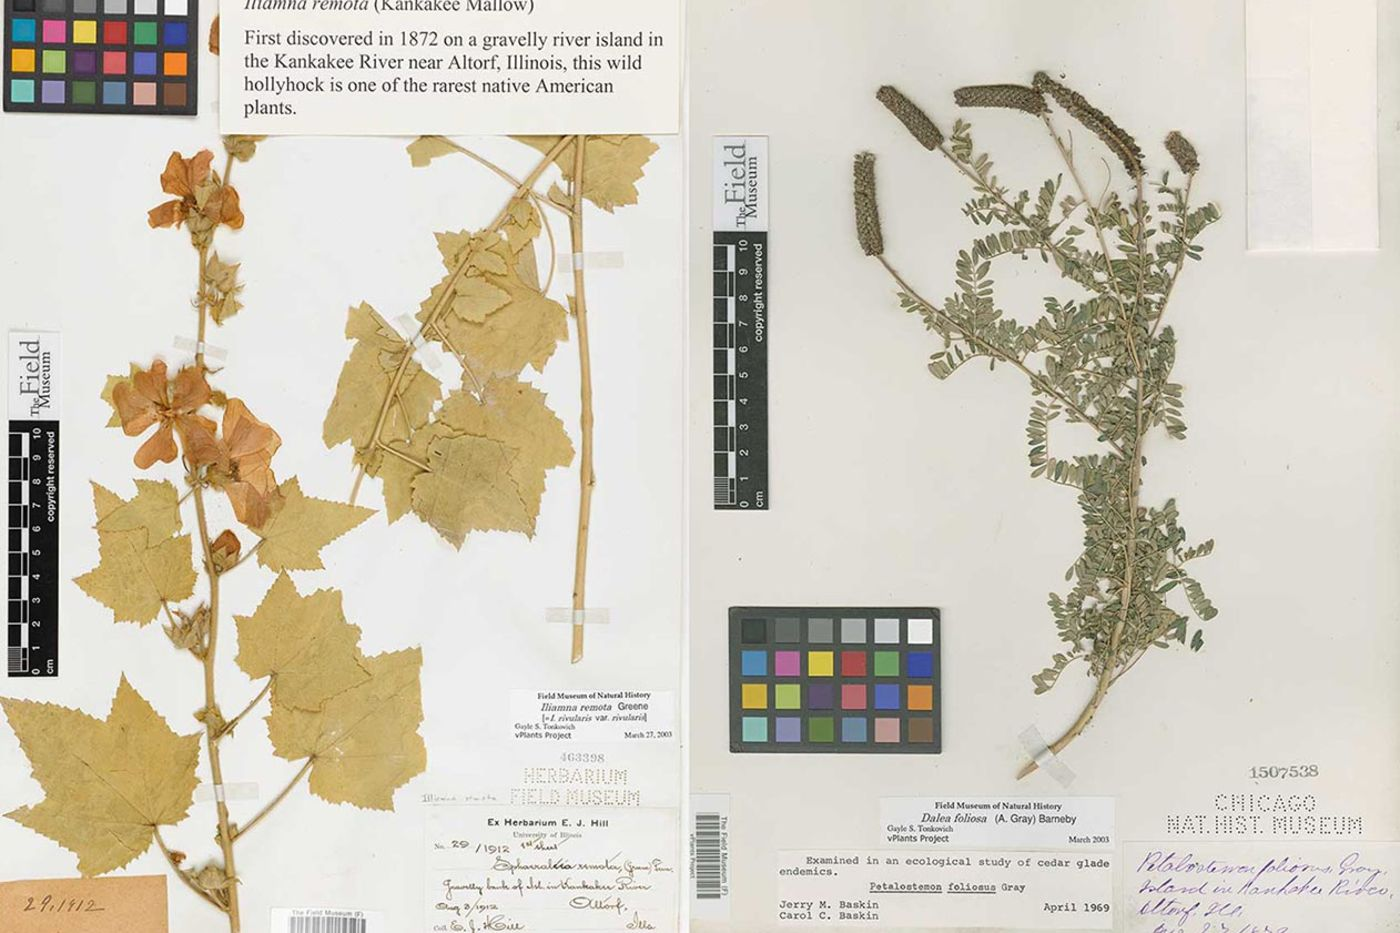 Two dried plant specimens, one yellow with large leaves and flowers, one green with many small leaves and seed pods